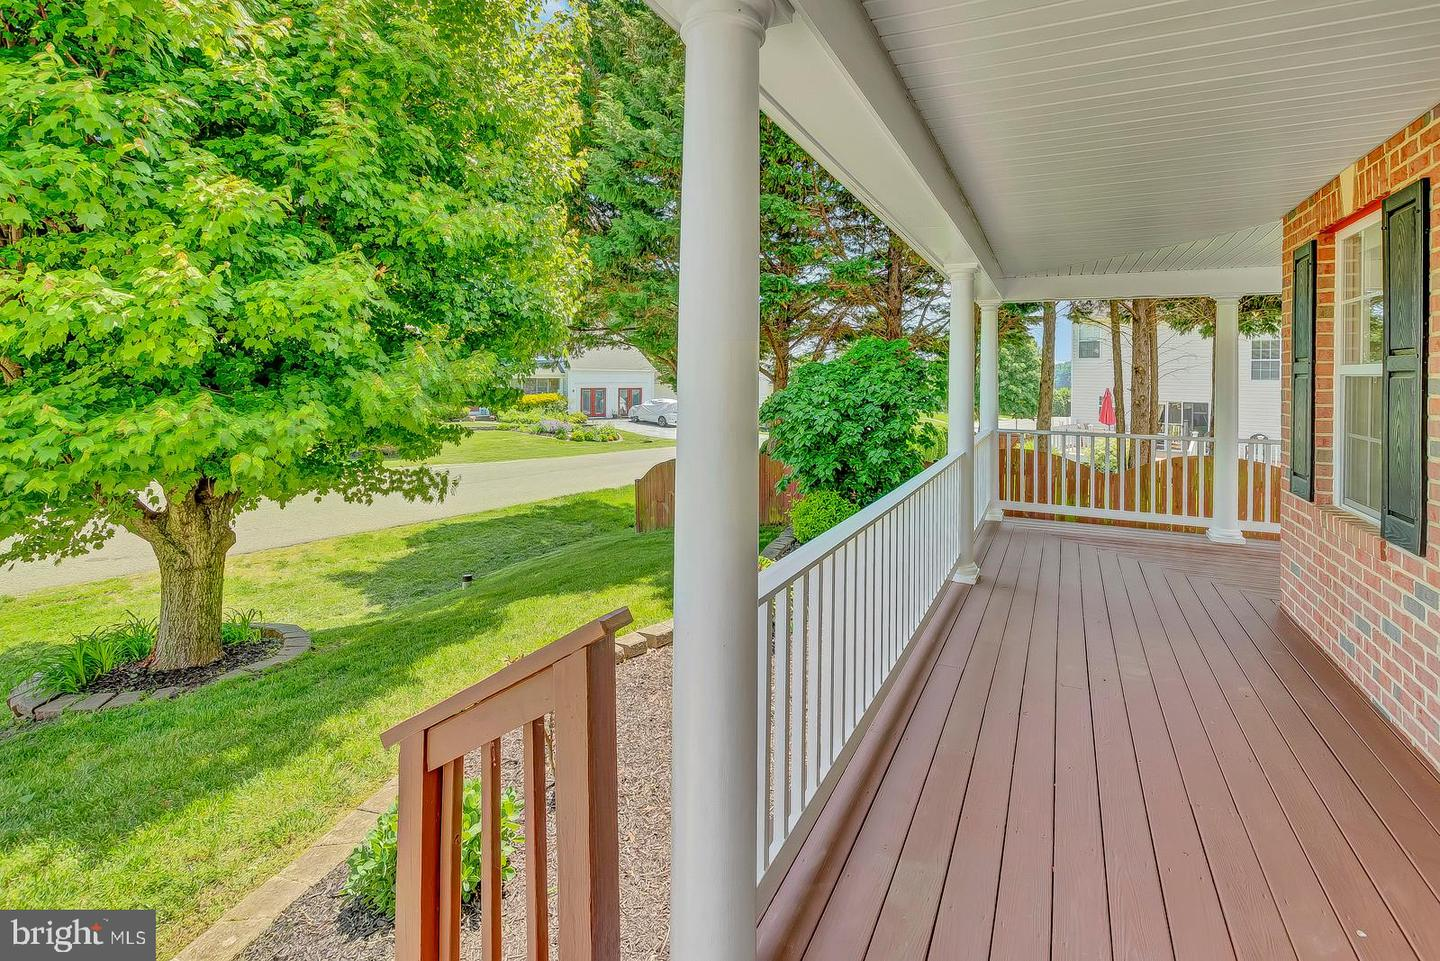 Additional photo for property listing at 8210 Bayview Hills Dr Chesapeake Beach, Maryland 20732 United States